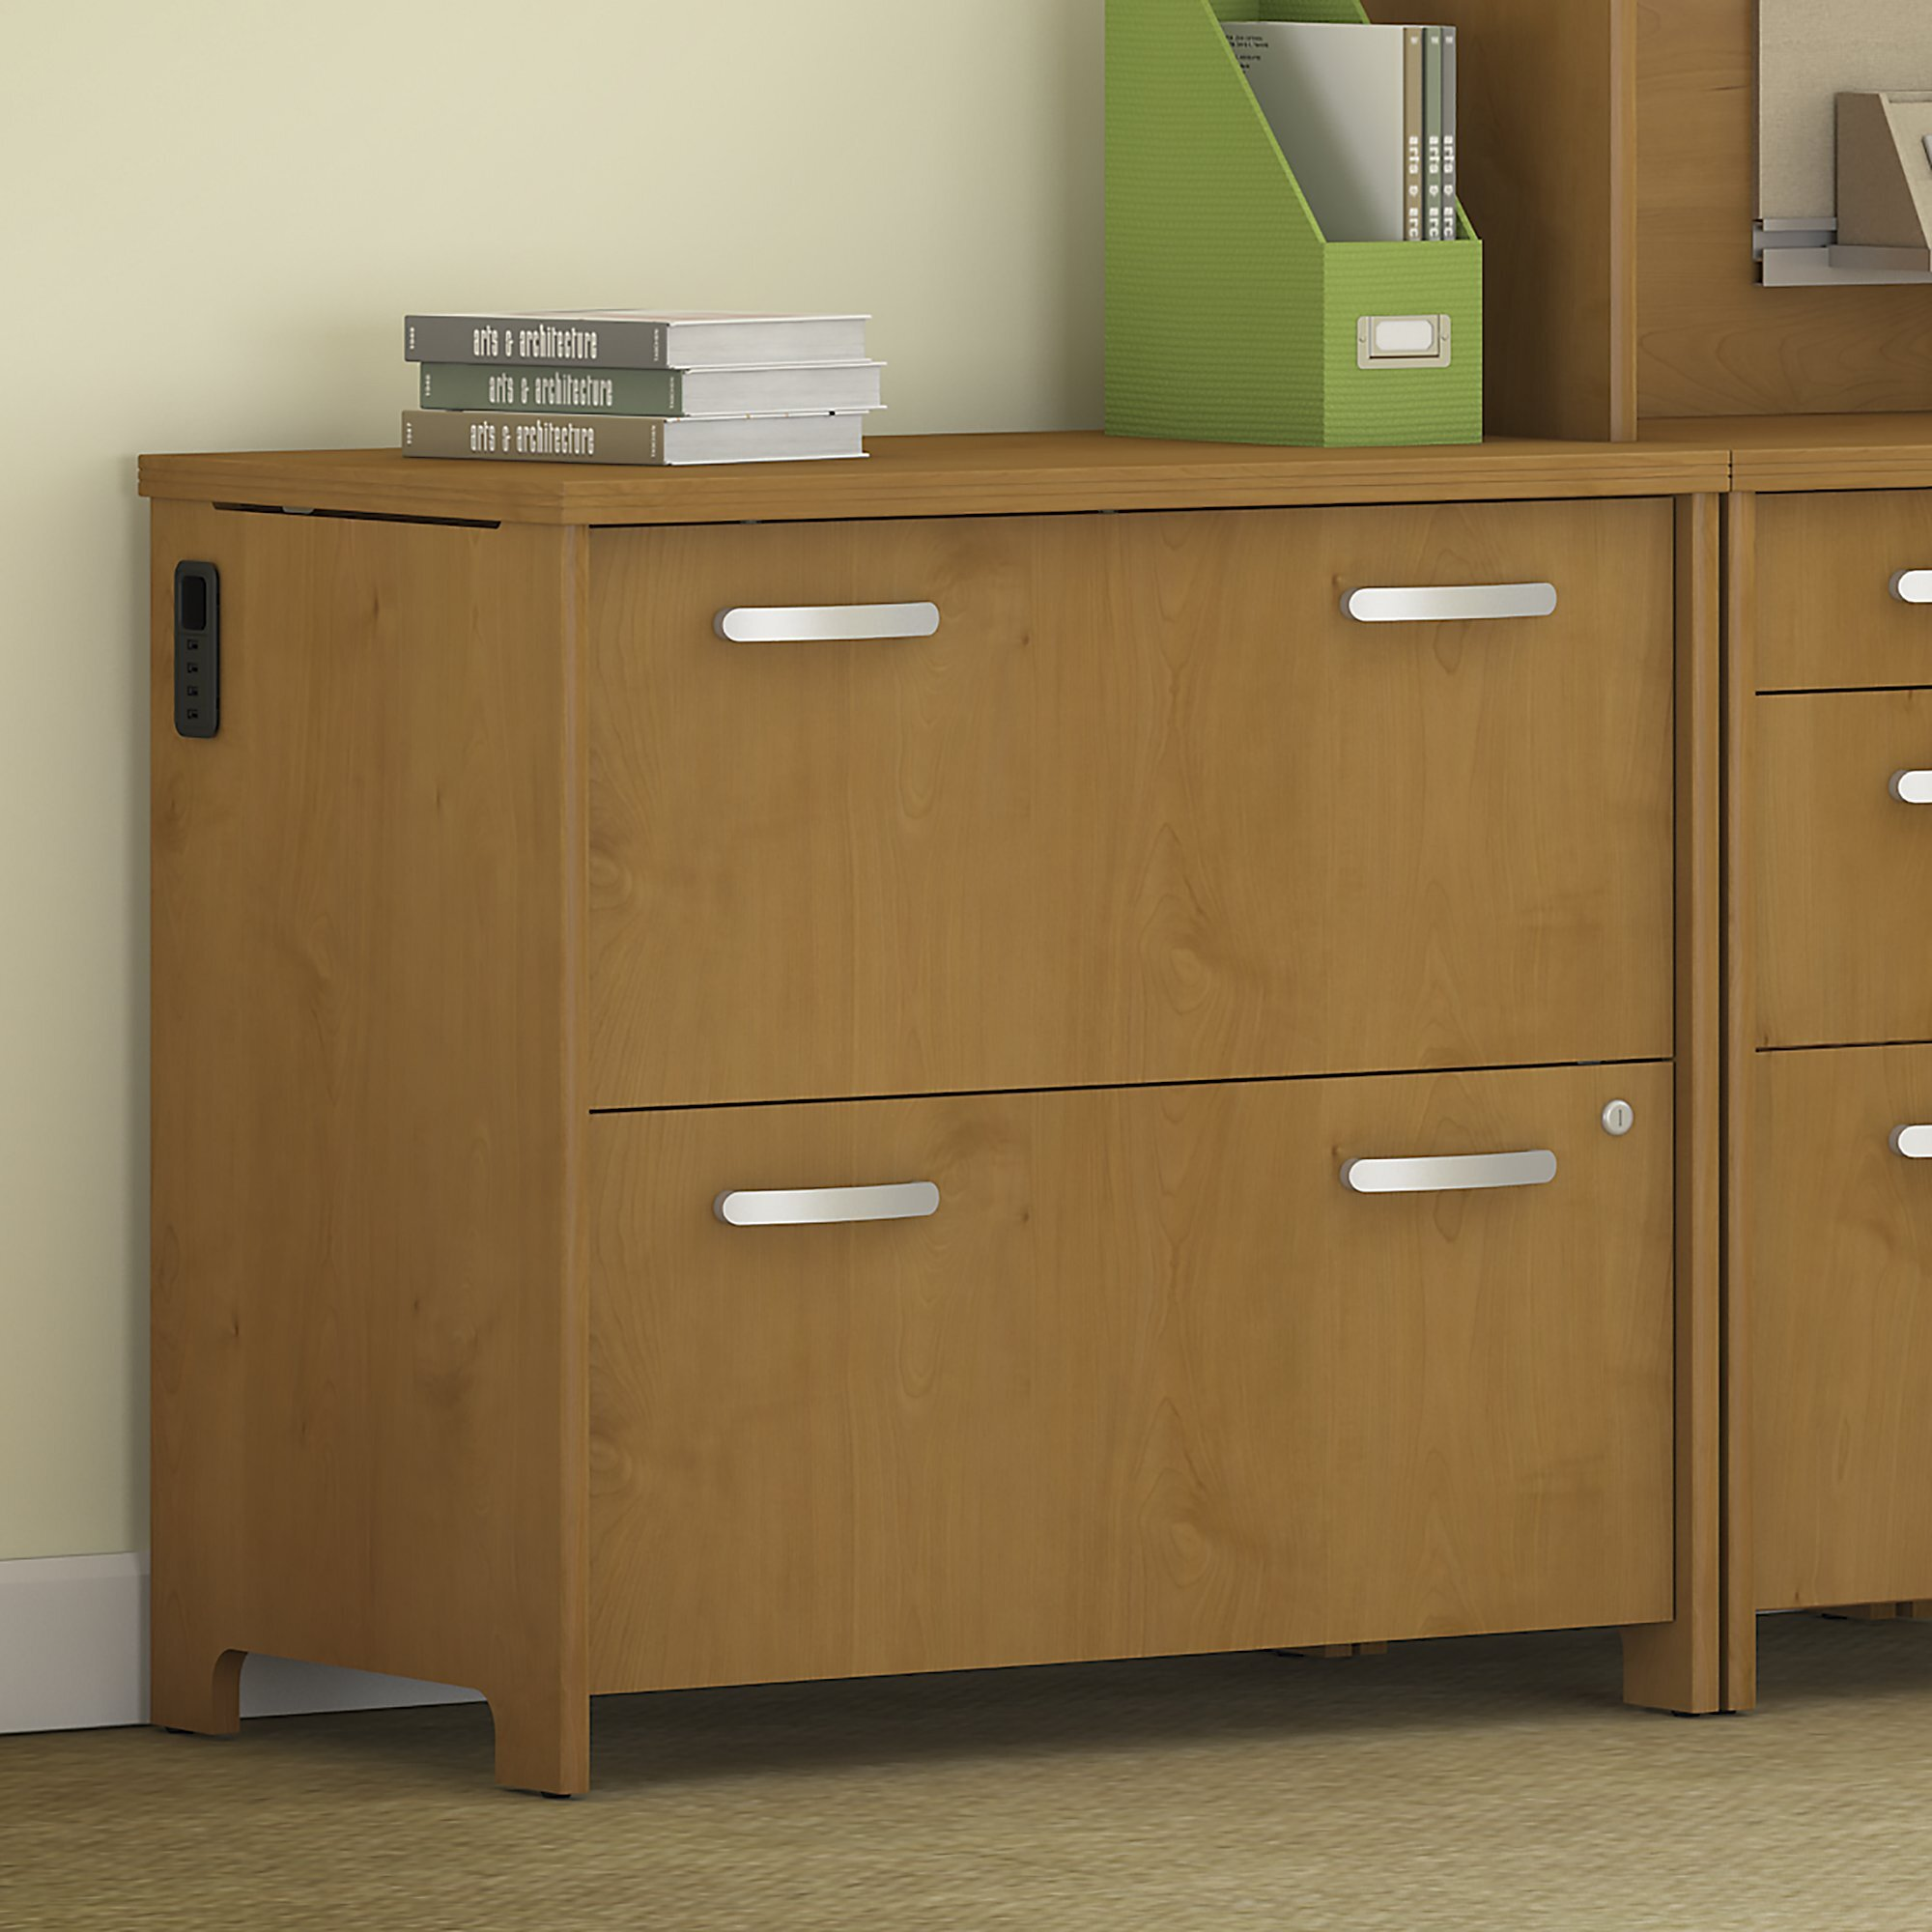 6 Drawer Lateral File Cabinet Envoy 2 Drawer Lateral Filing Cabinet Reviews Birch Lane